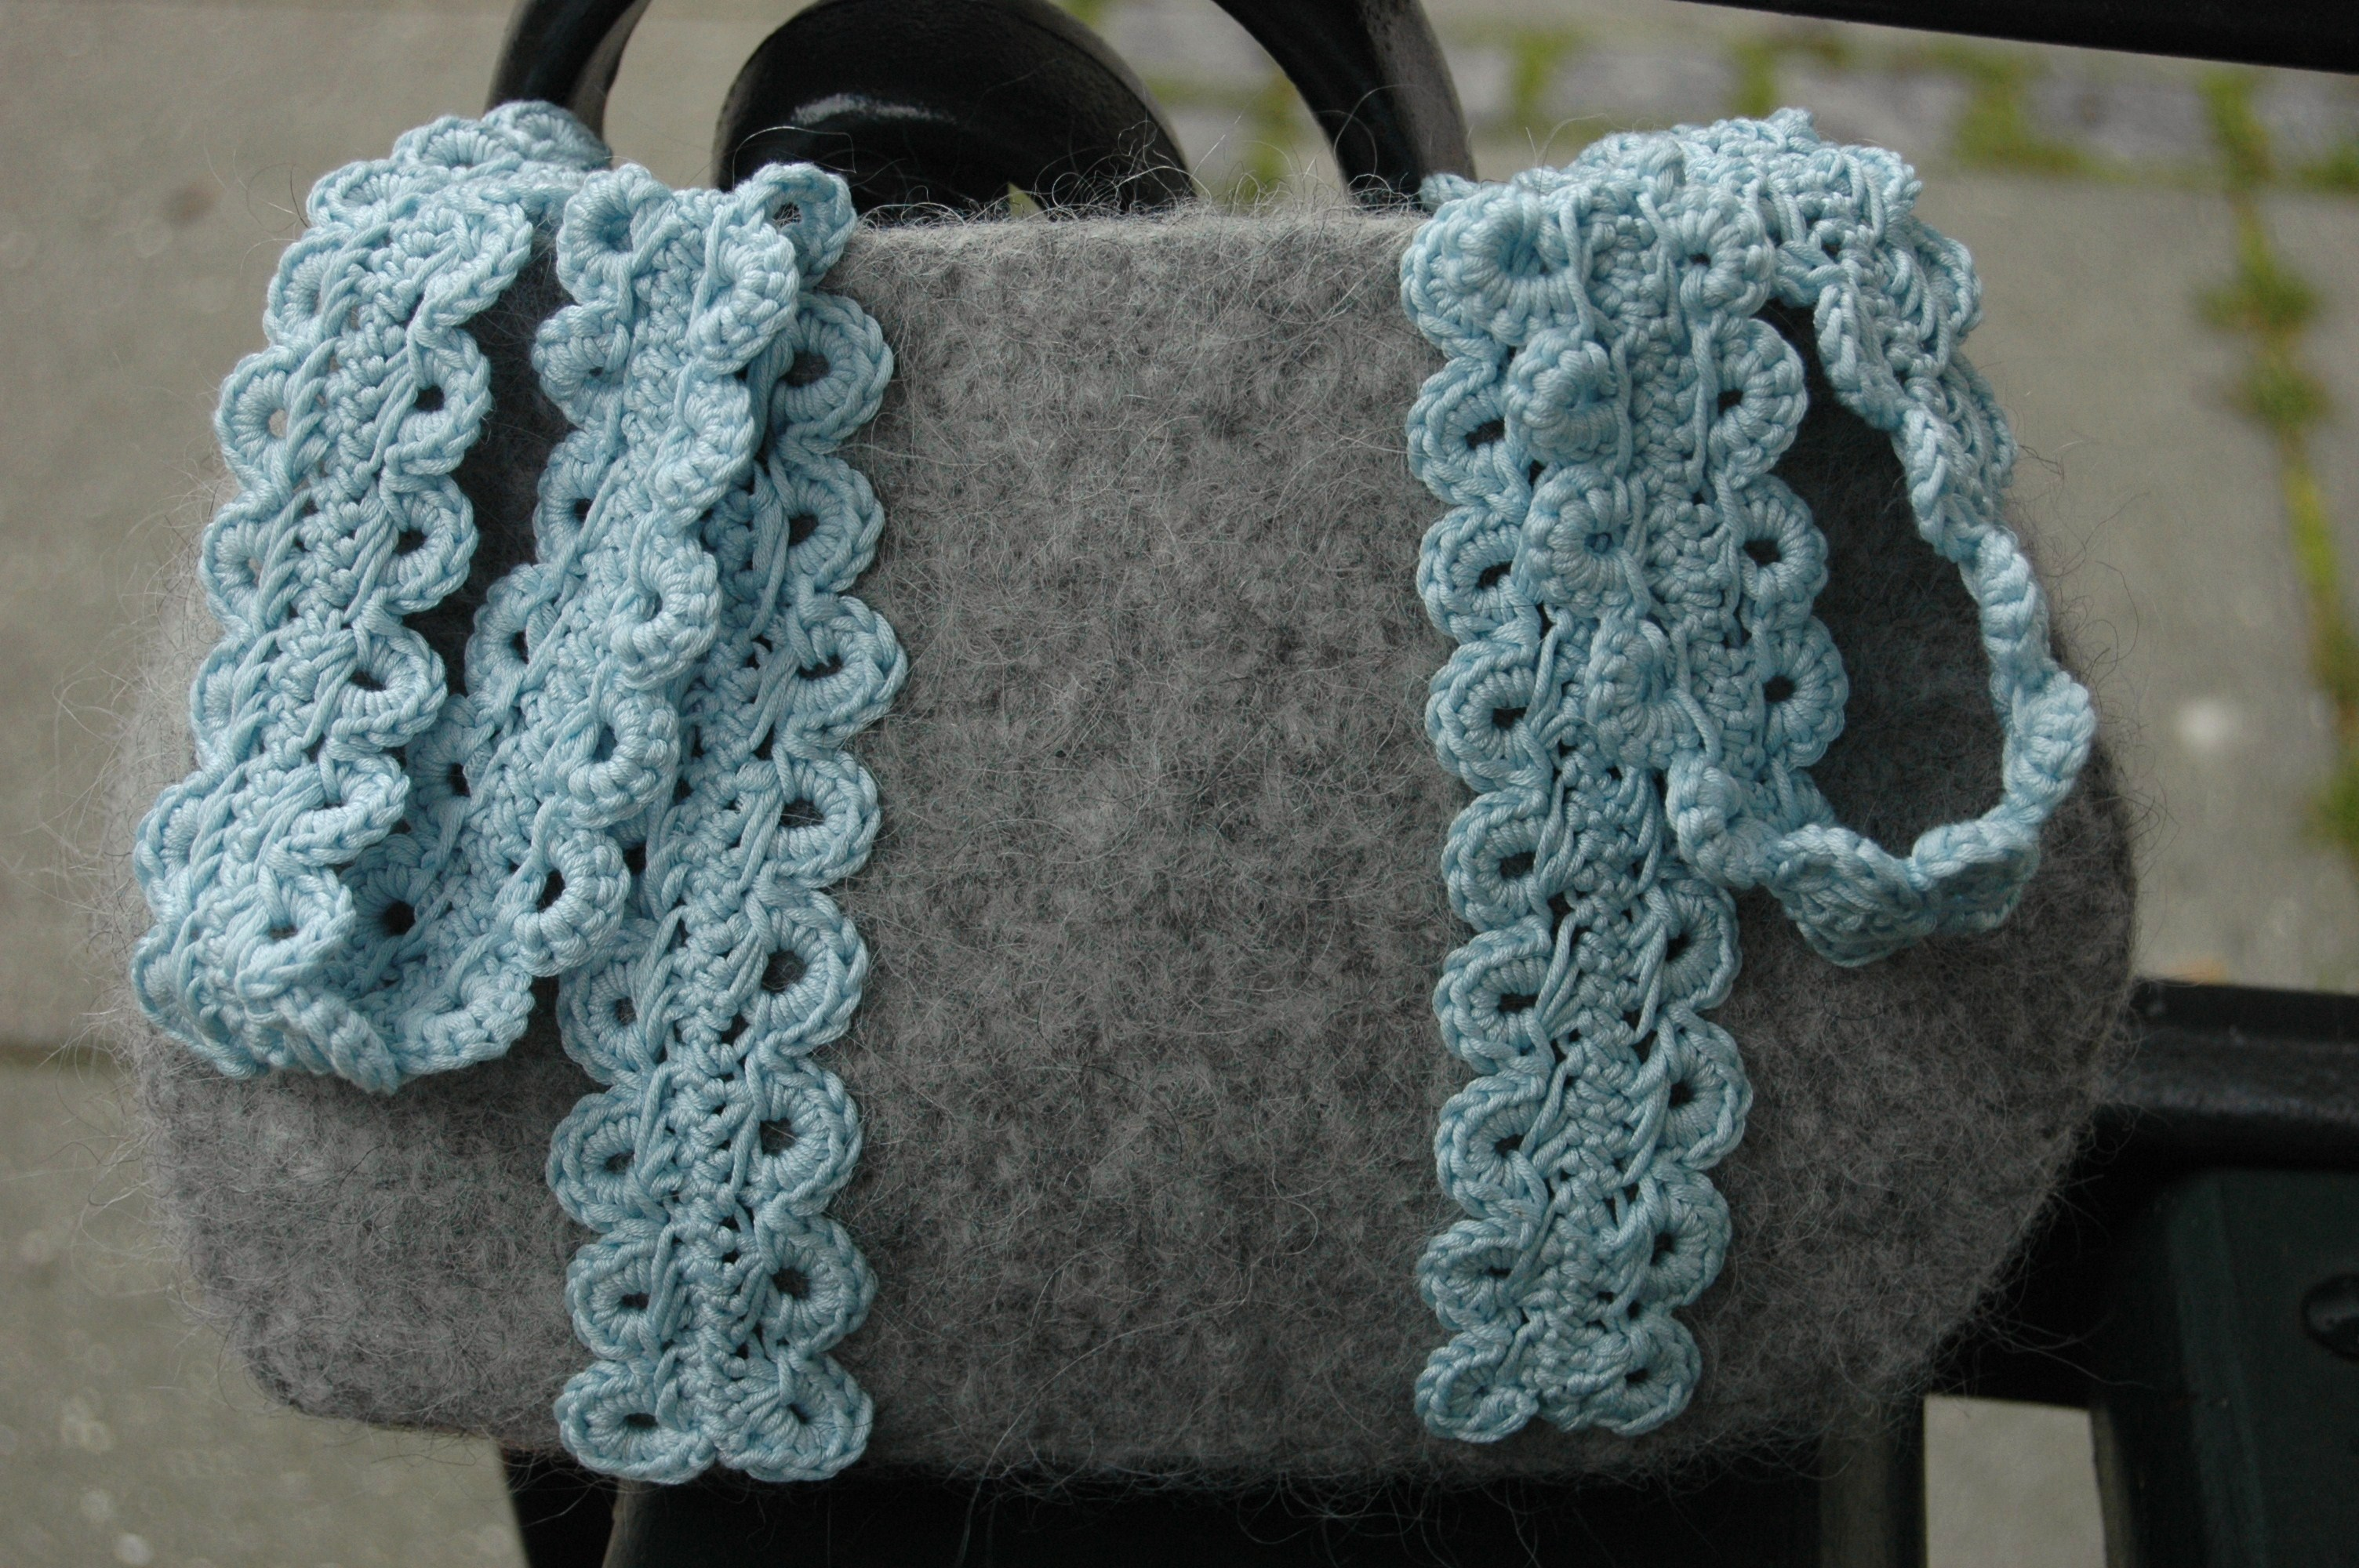 FREE CROCHETED PURSE PATTERNS Crochet For Beginners